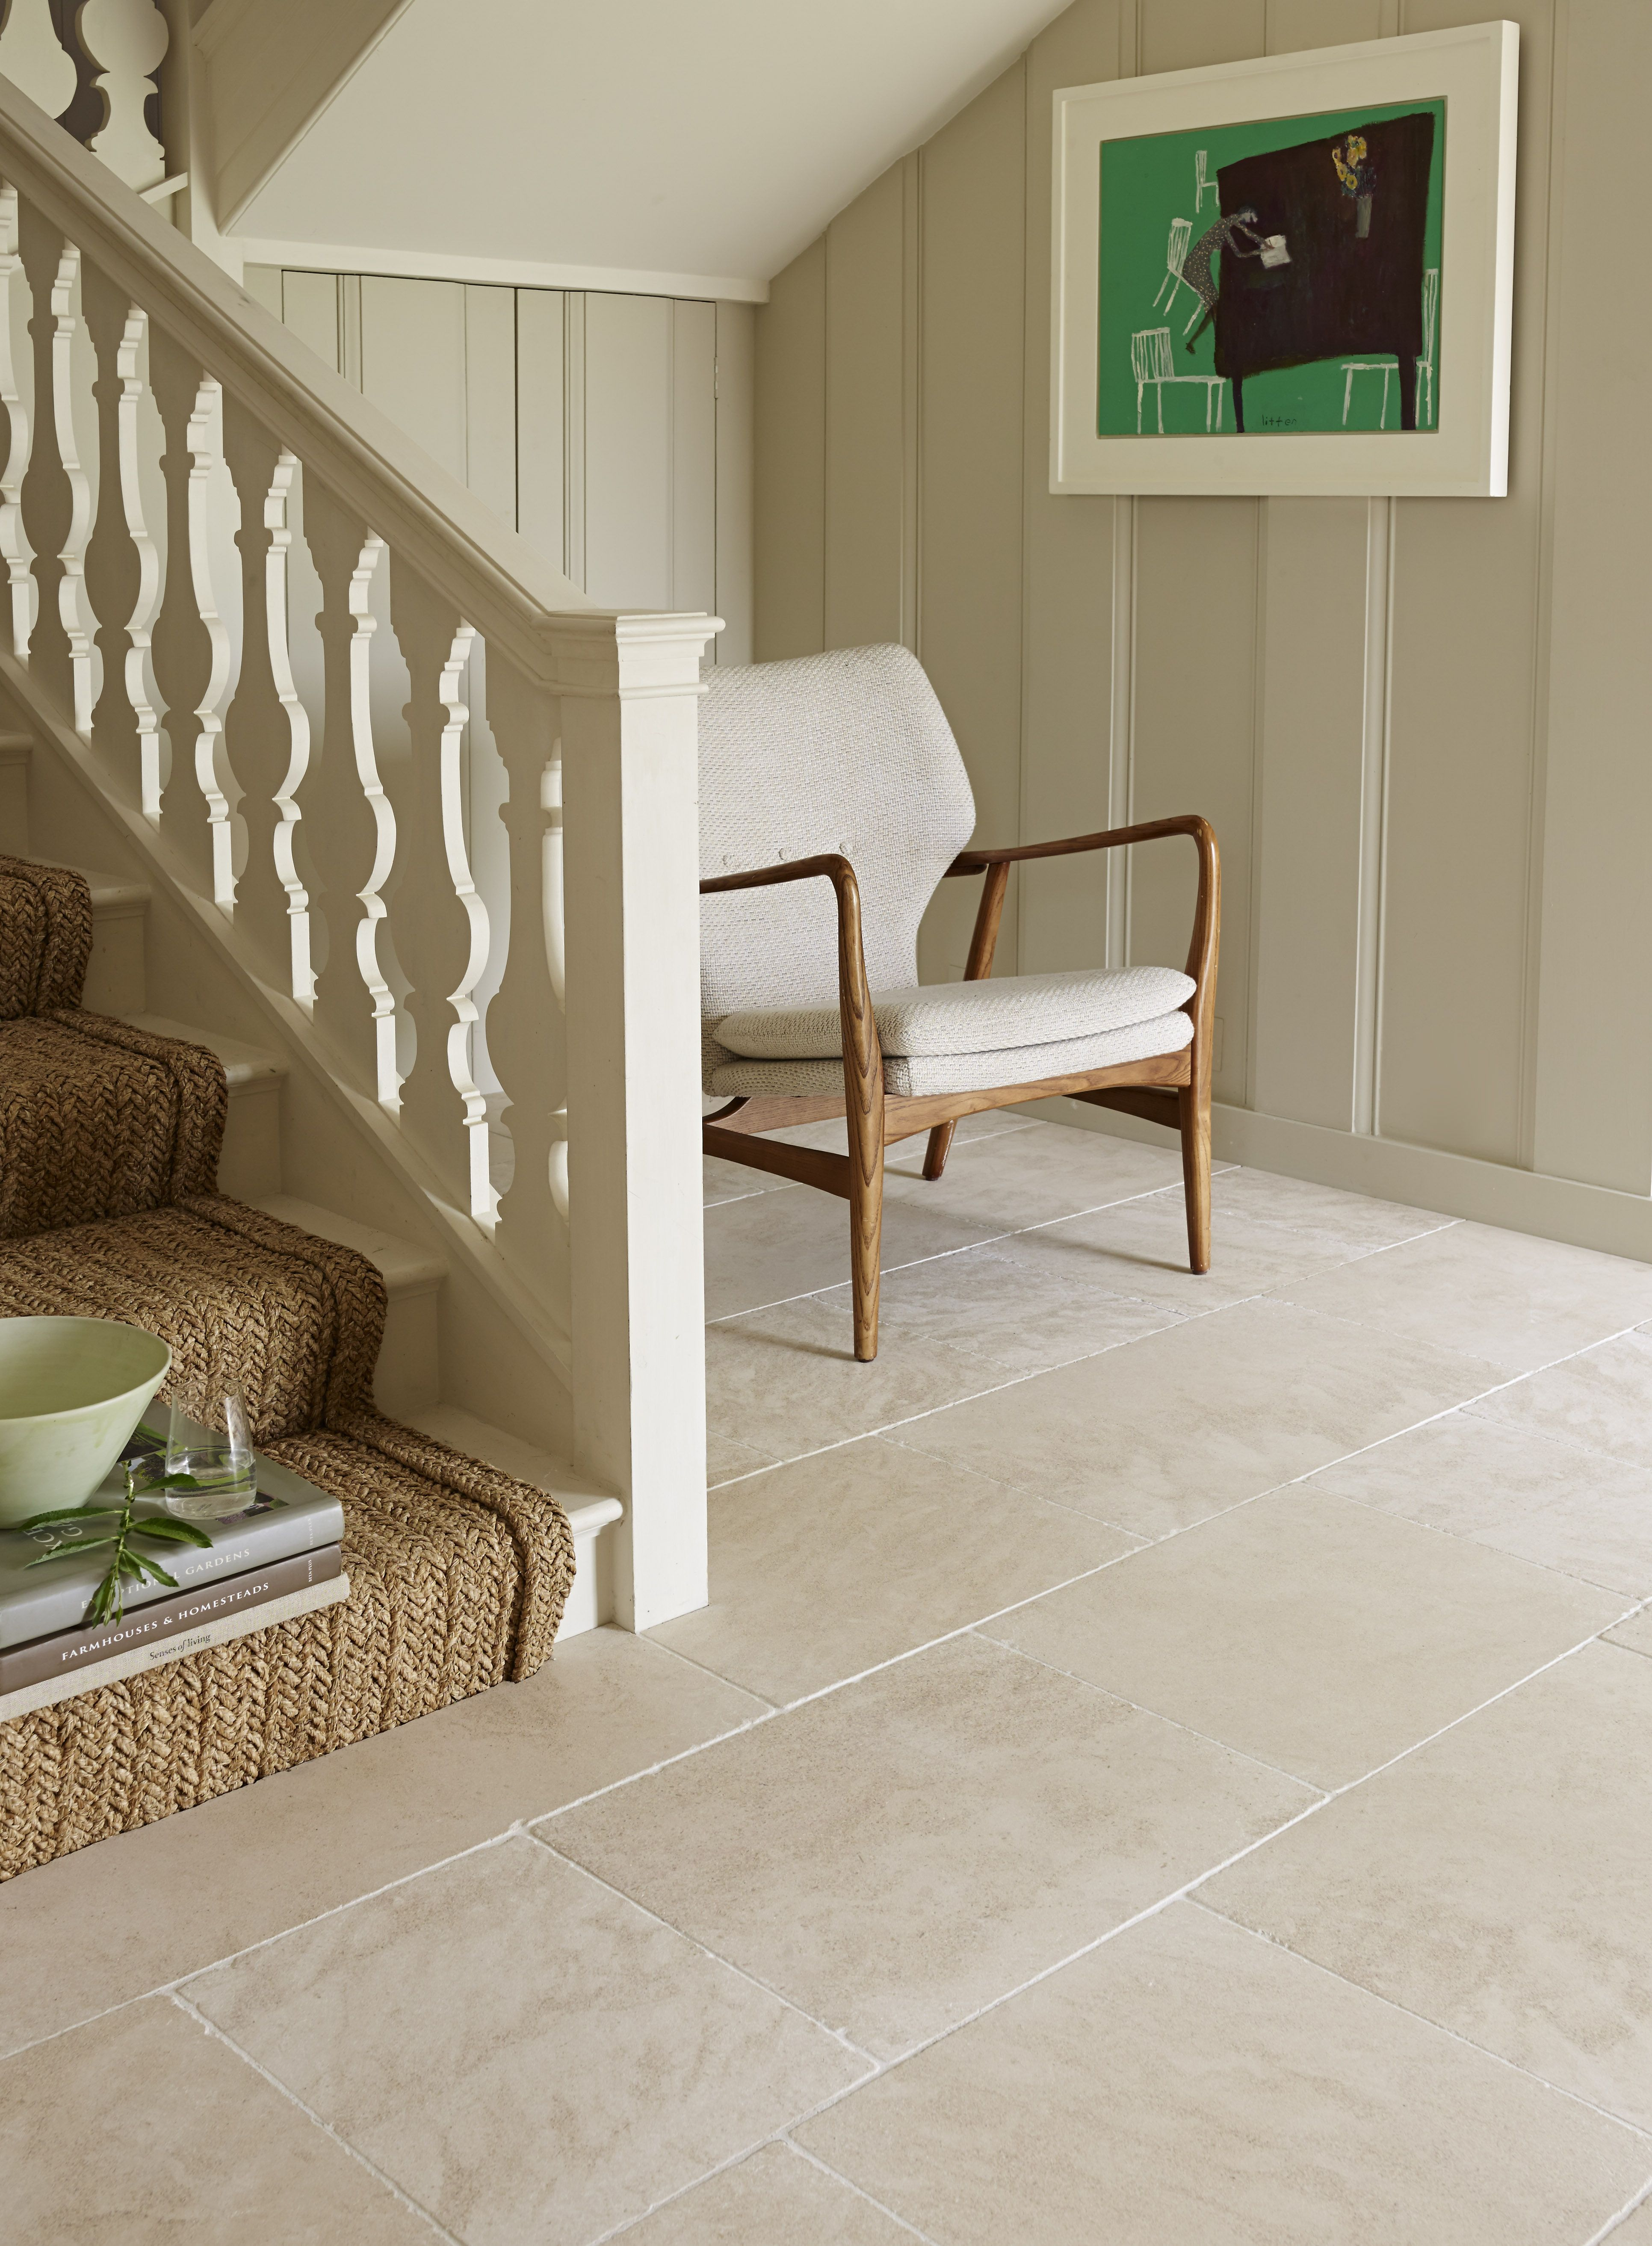 St sernin tumbled limestone tiles from original styles earthworks kitchen tiles beige moleanos beige tumbled limestone floor tiles create and elegant and timeless look doublecrazyfo Image collections